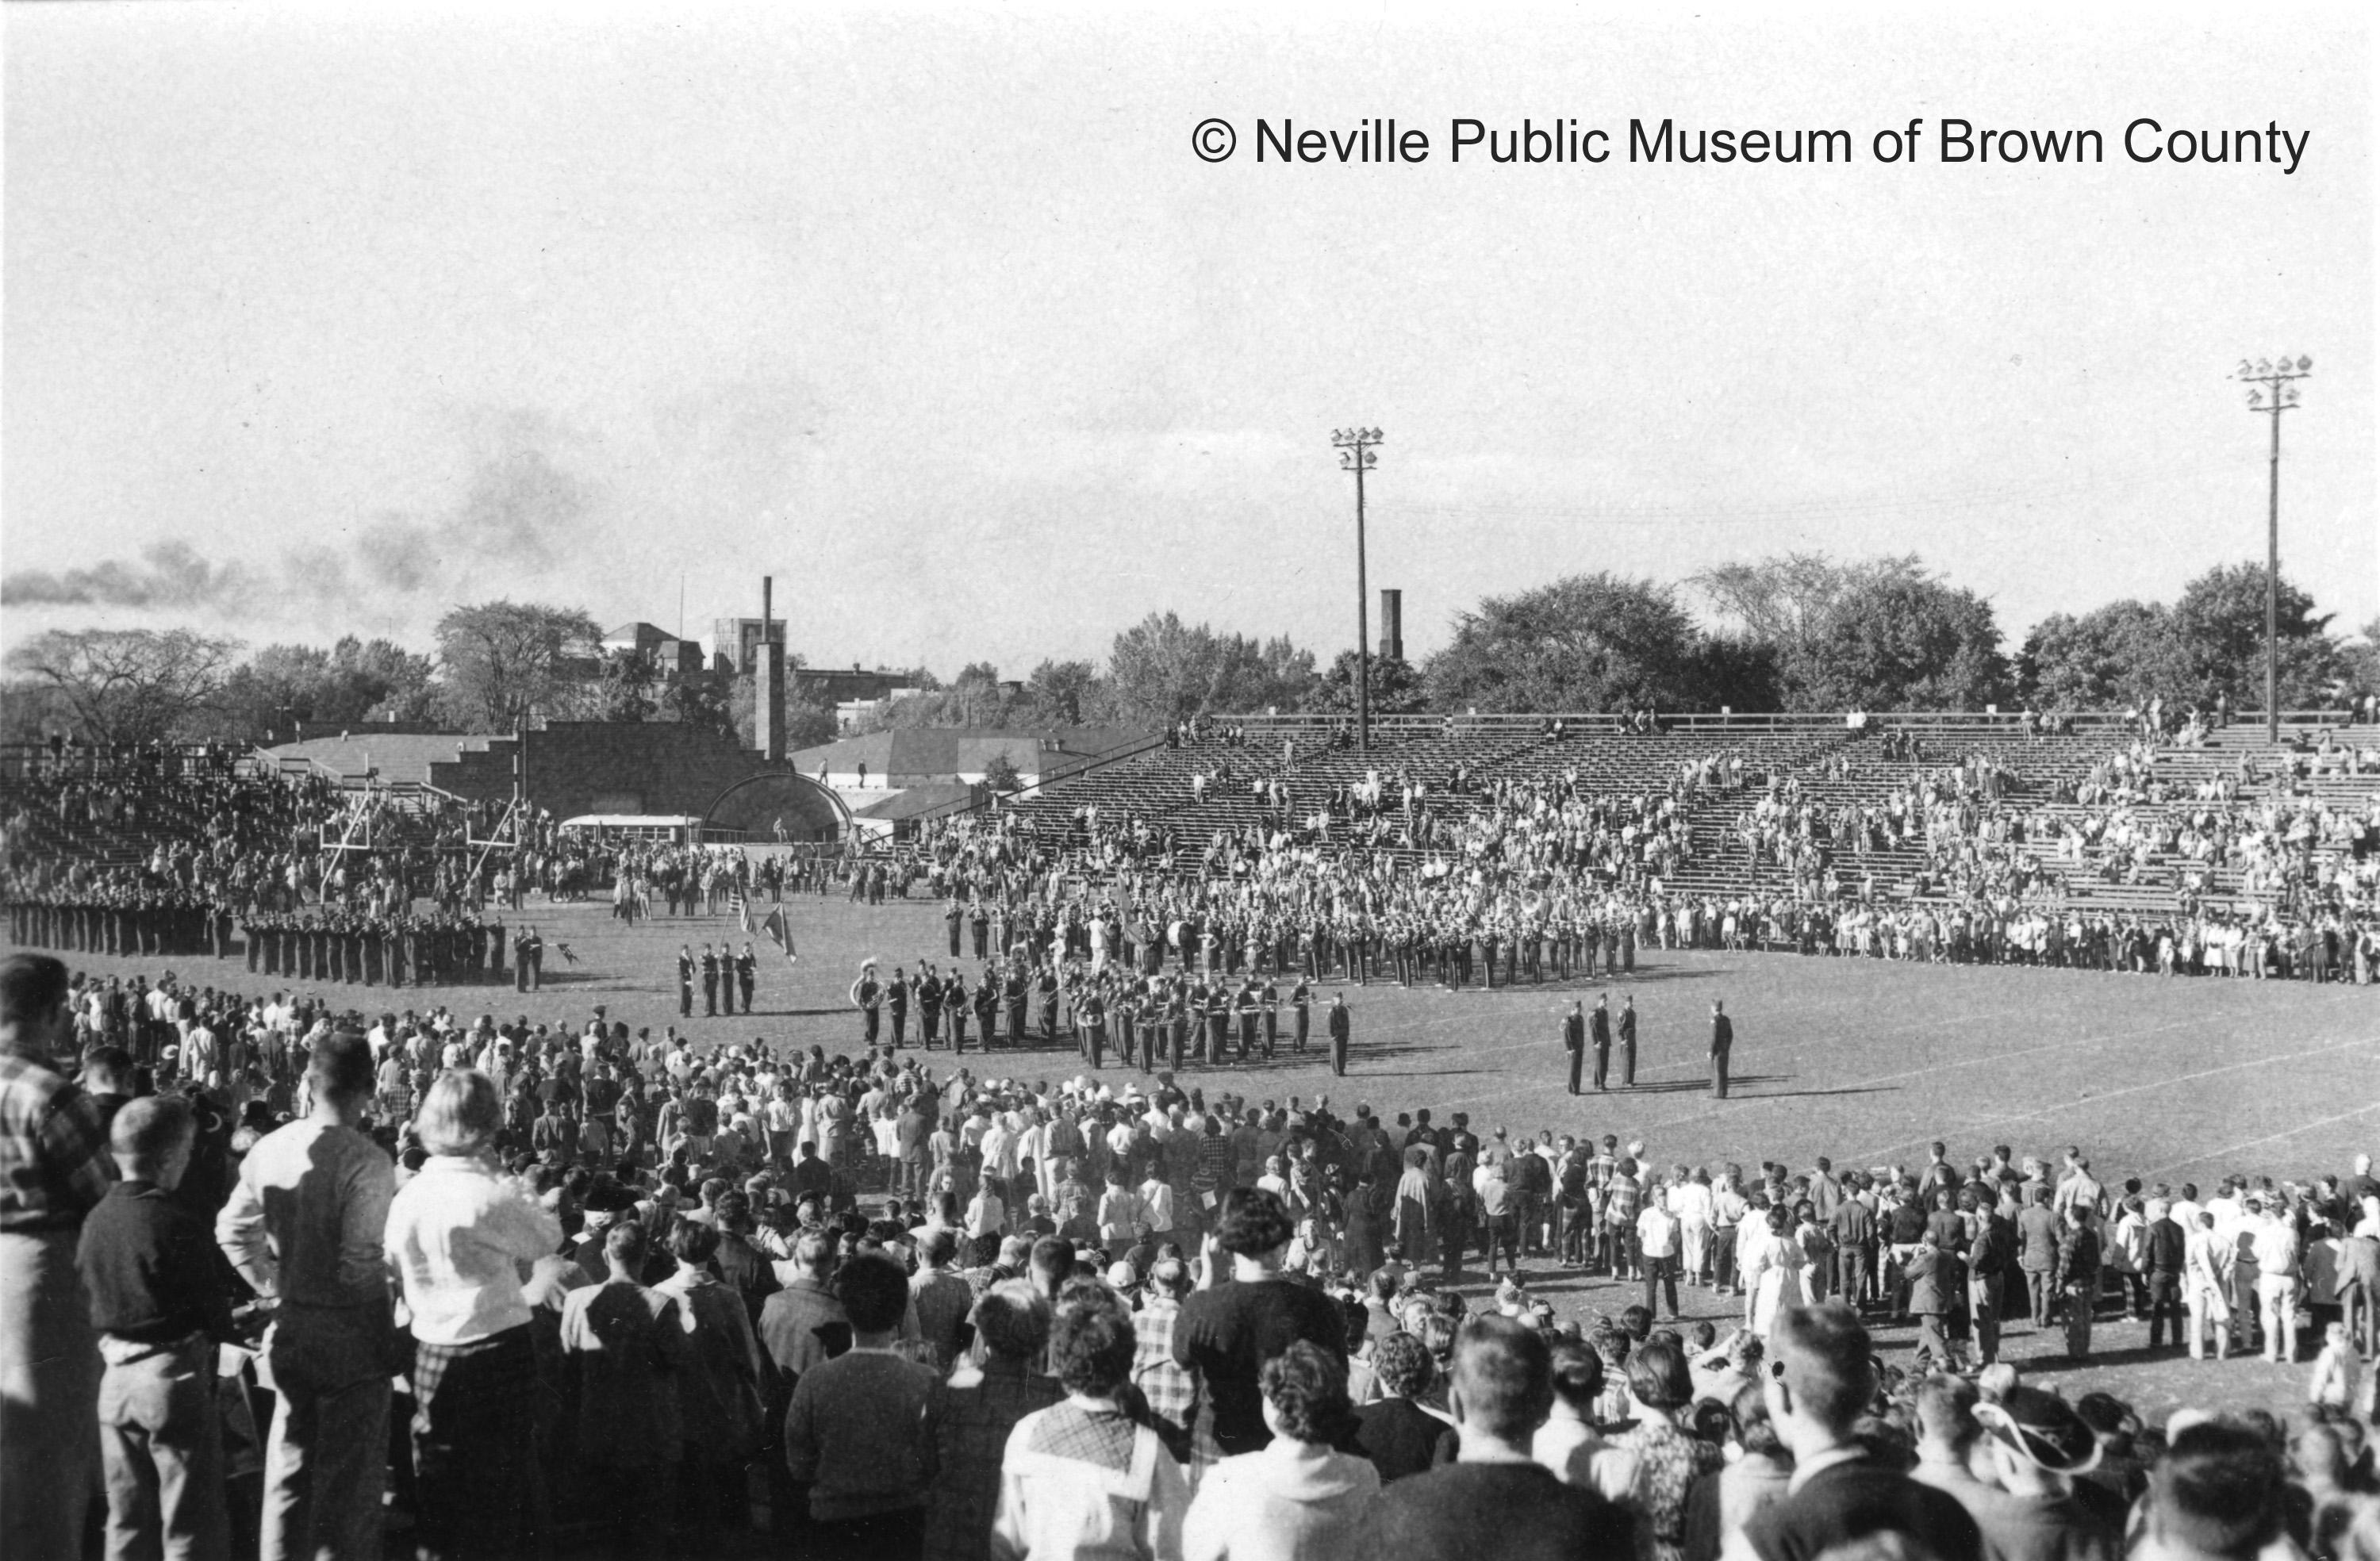 Military band performs at City Stadium (date unknown). (Courtesy: Neville Public Museum of Brown County)